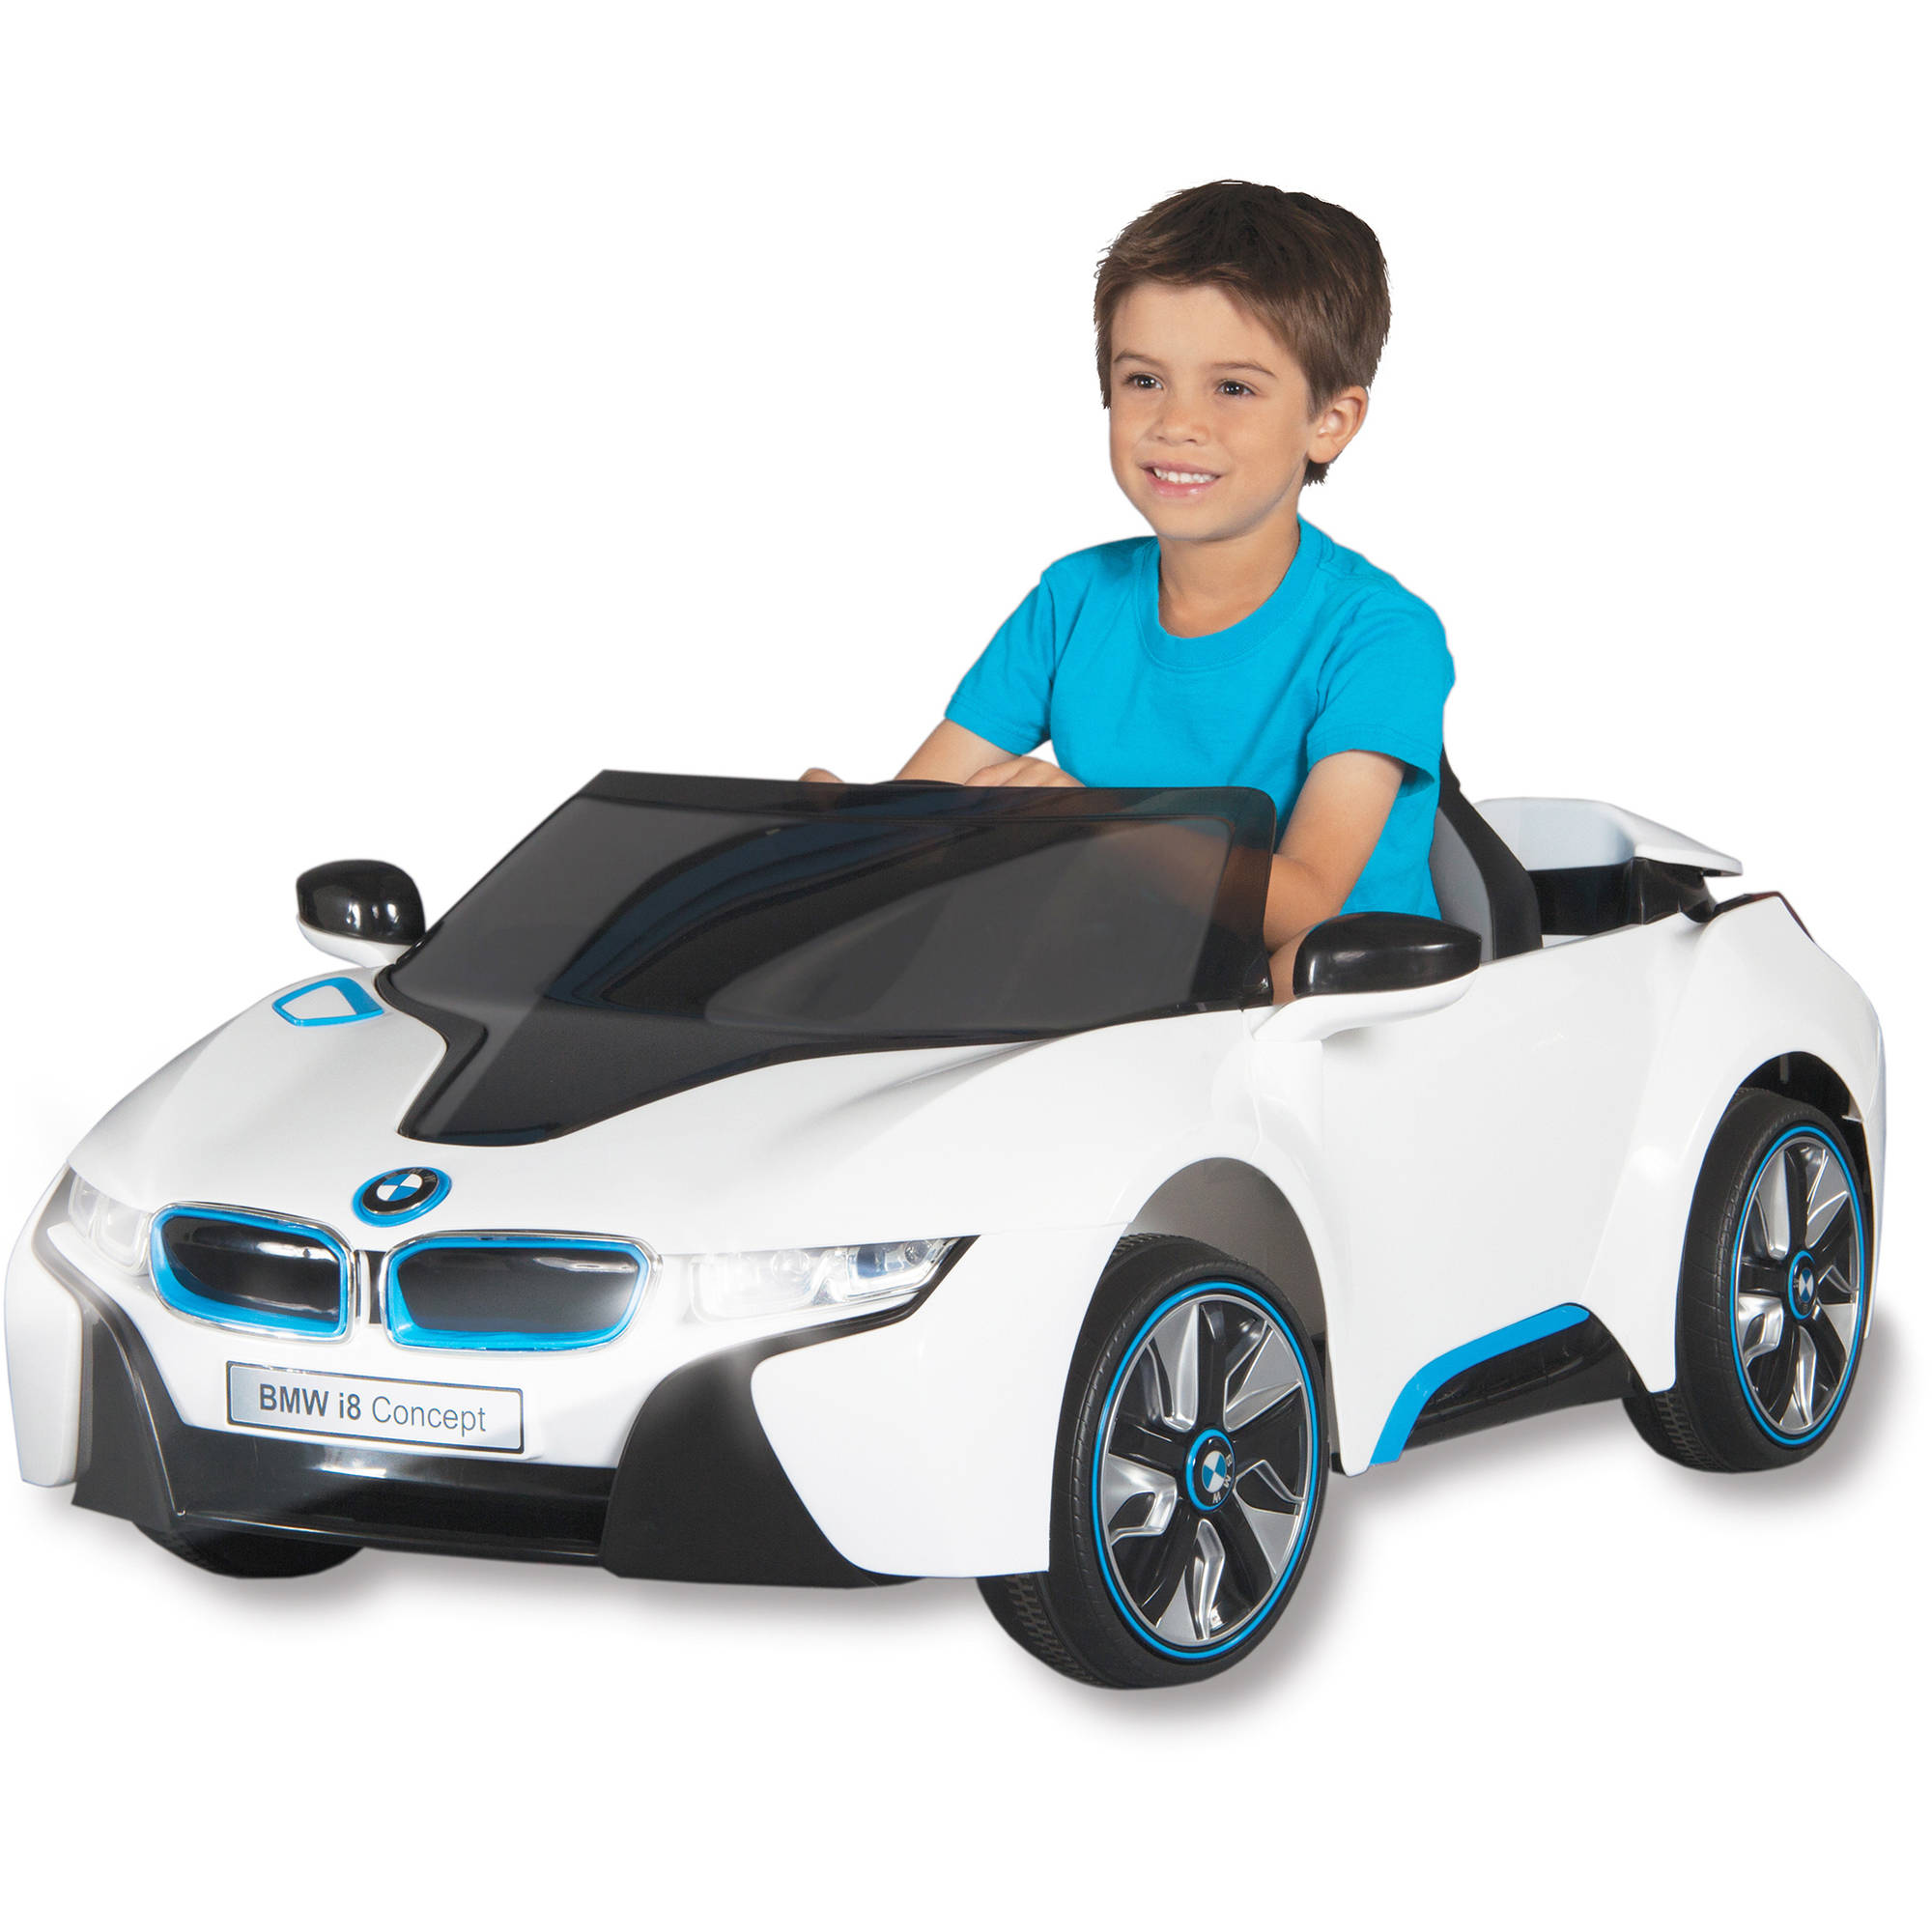 BMW I8 Concept Car 6-Volt Battery-Powered Ride-On